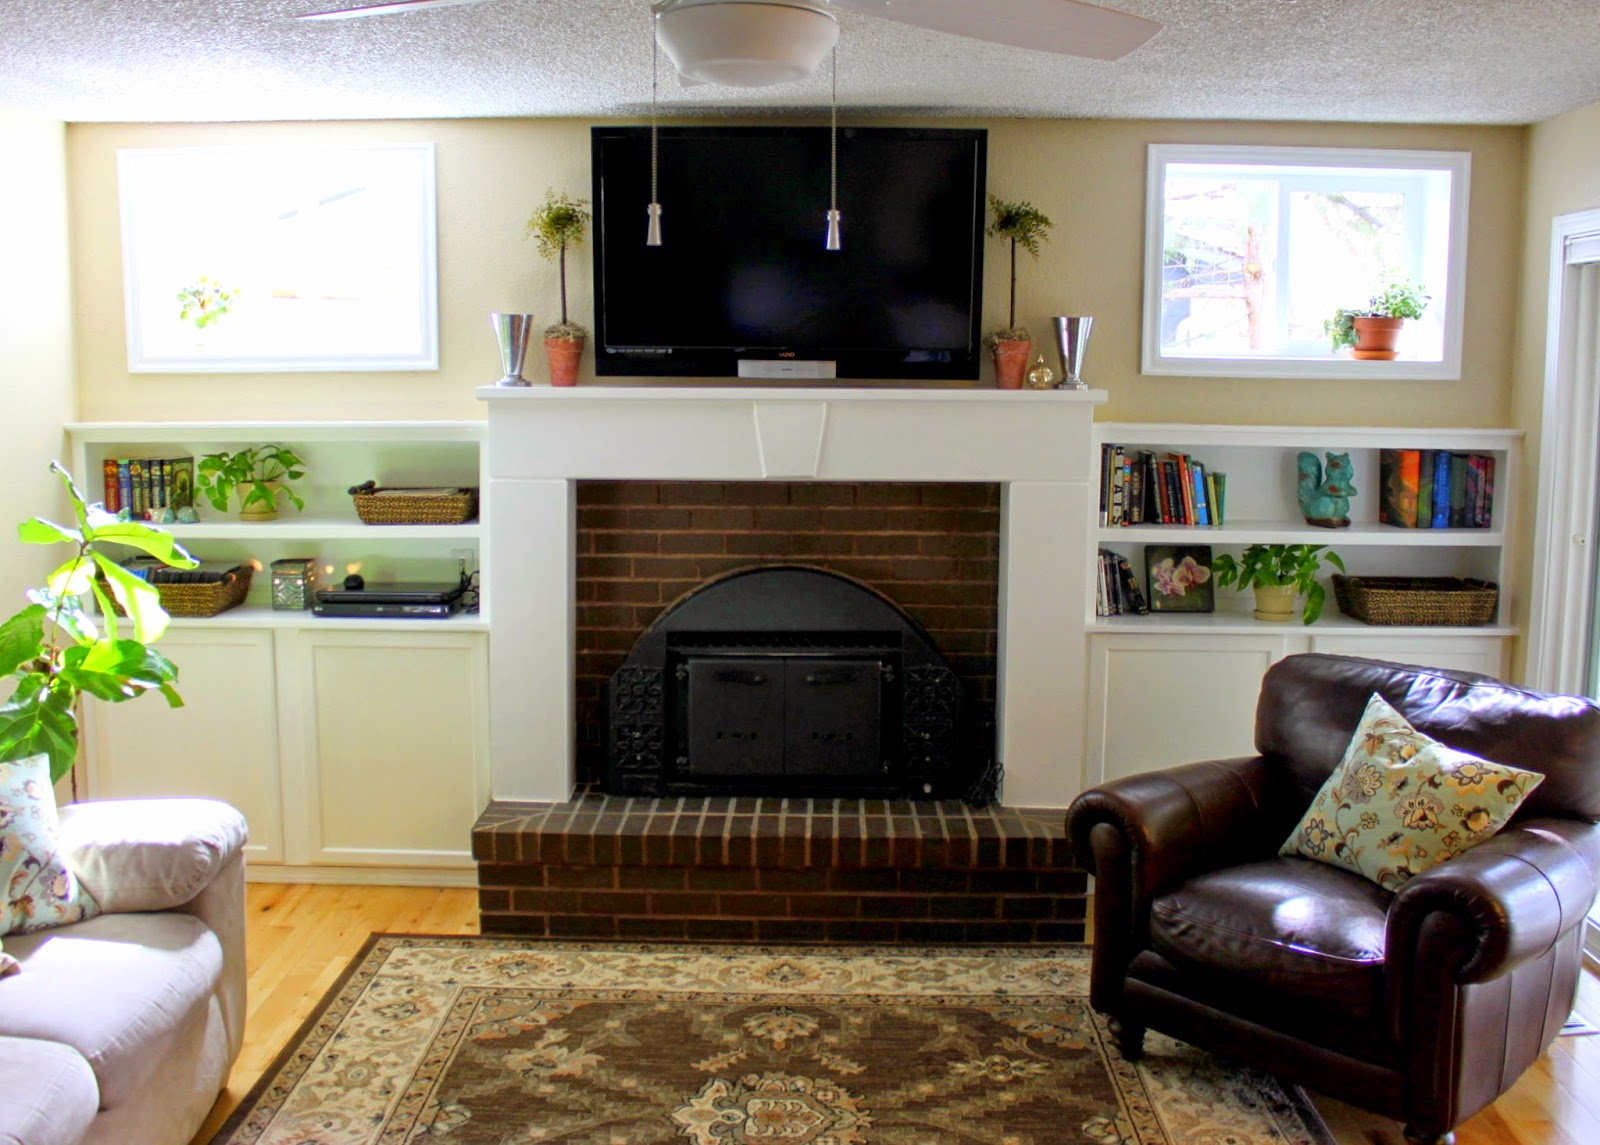 Crafty Sisters: Fireplace Built Ins